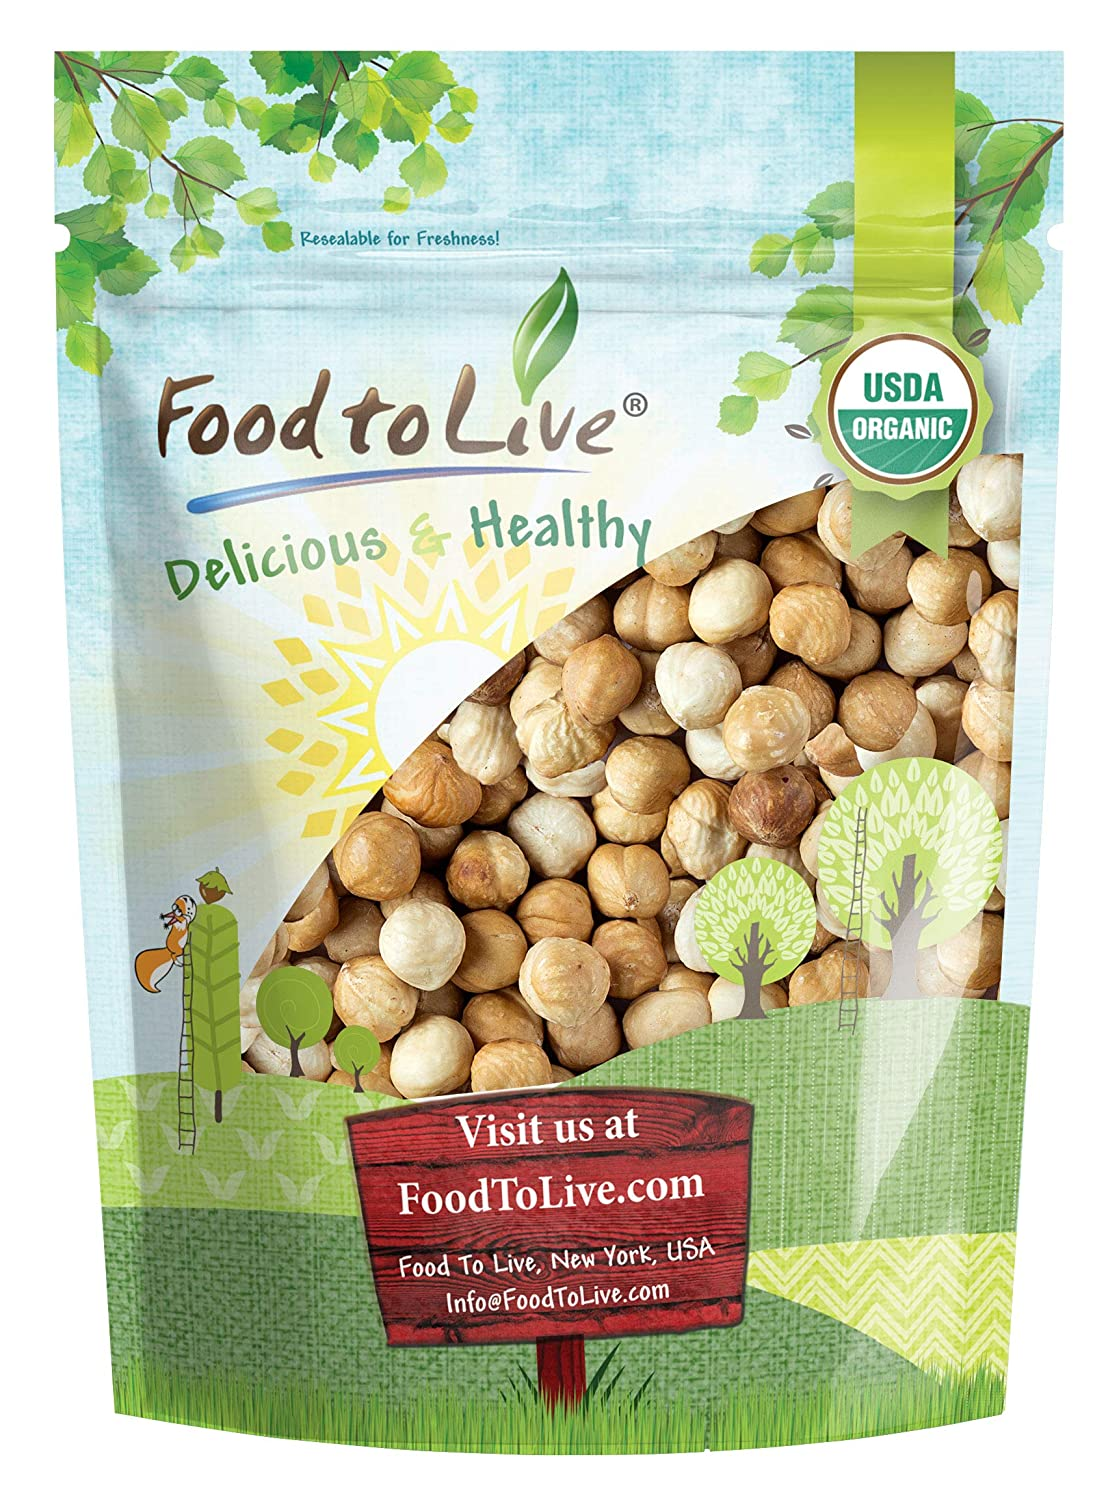 Organic Blanched Roasted Hazelnuts, 2 Pounds - Non-GMO, No Skin, Unsalted, Kosher, Vegan, Keto, Paleo, Dry Roasted Filberts in Bulk, Great for Snacks, Salads, and Granola